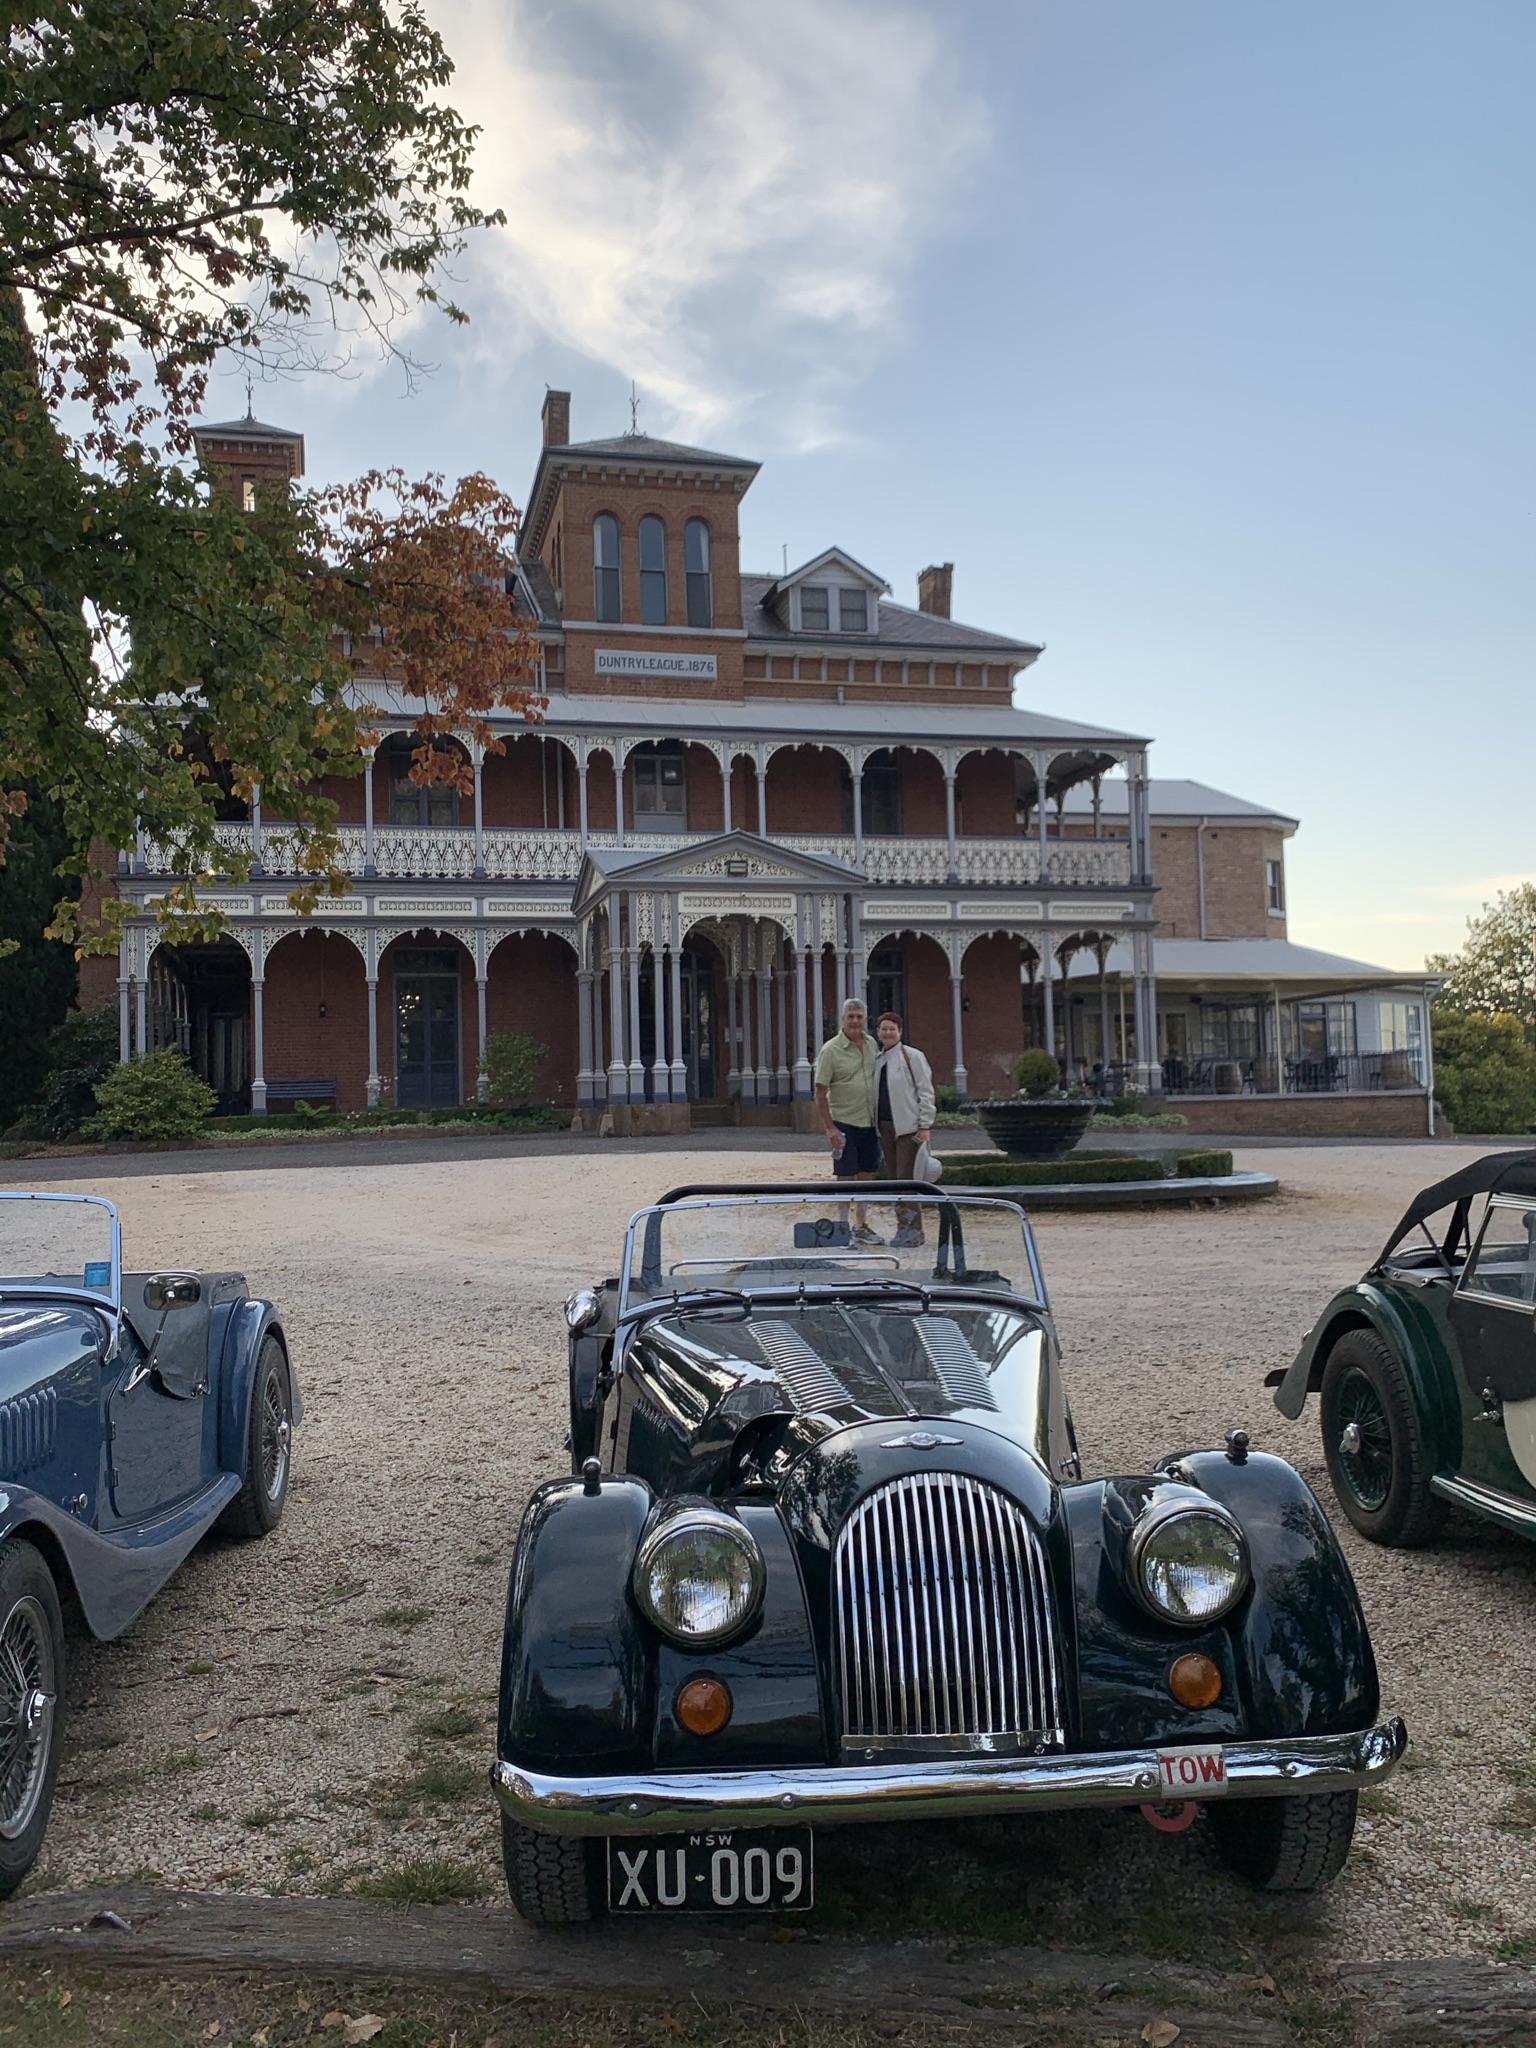 historic car in front of historic mansion